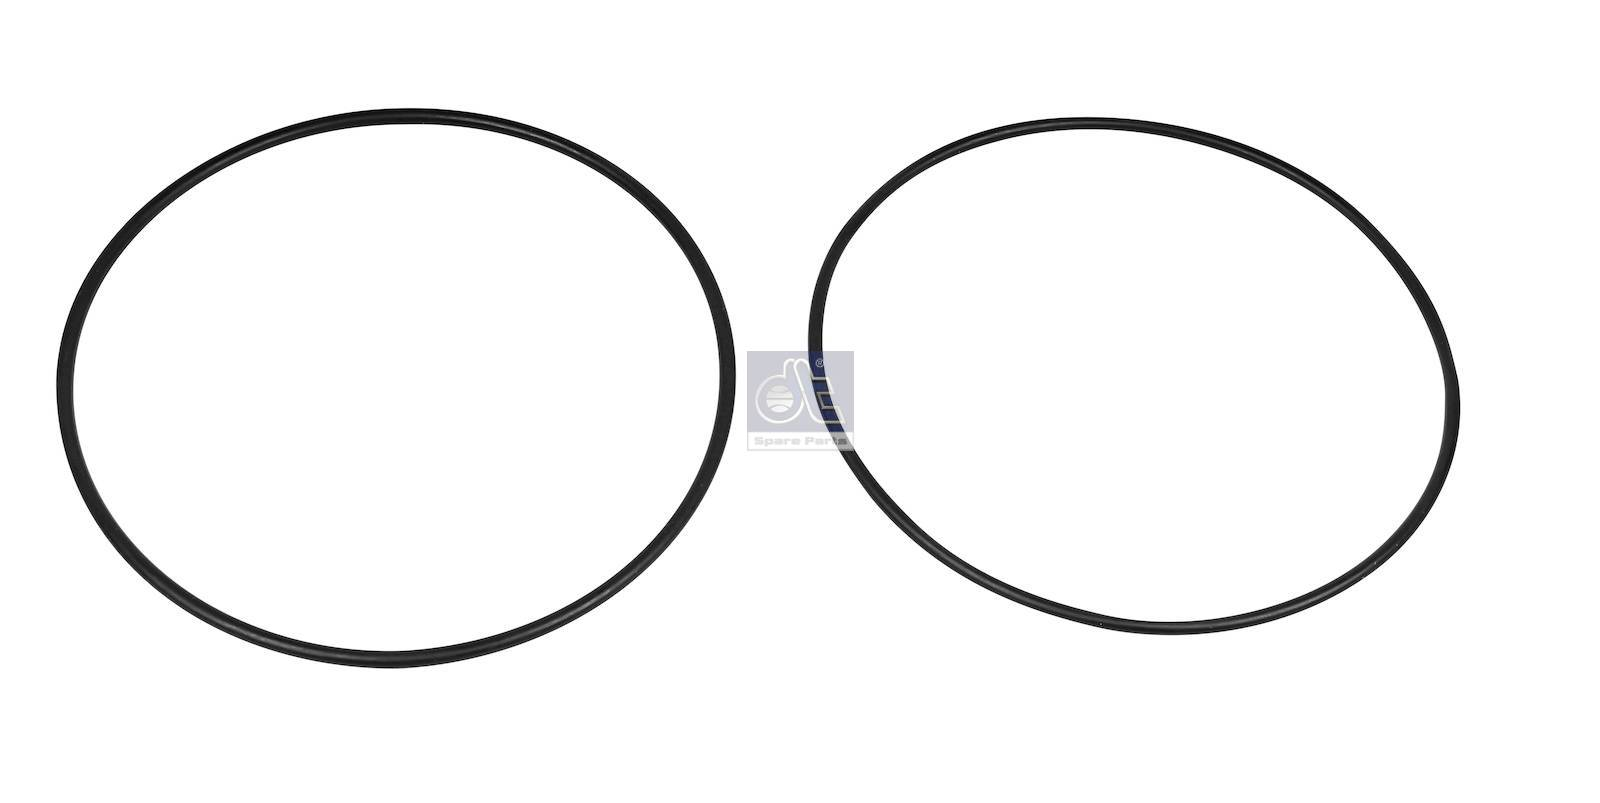 Seal ring kit, cylinder liner